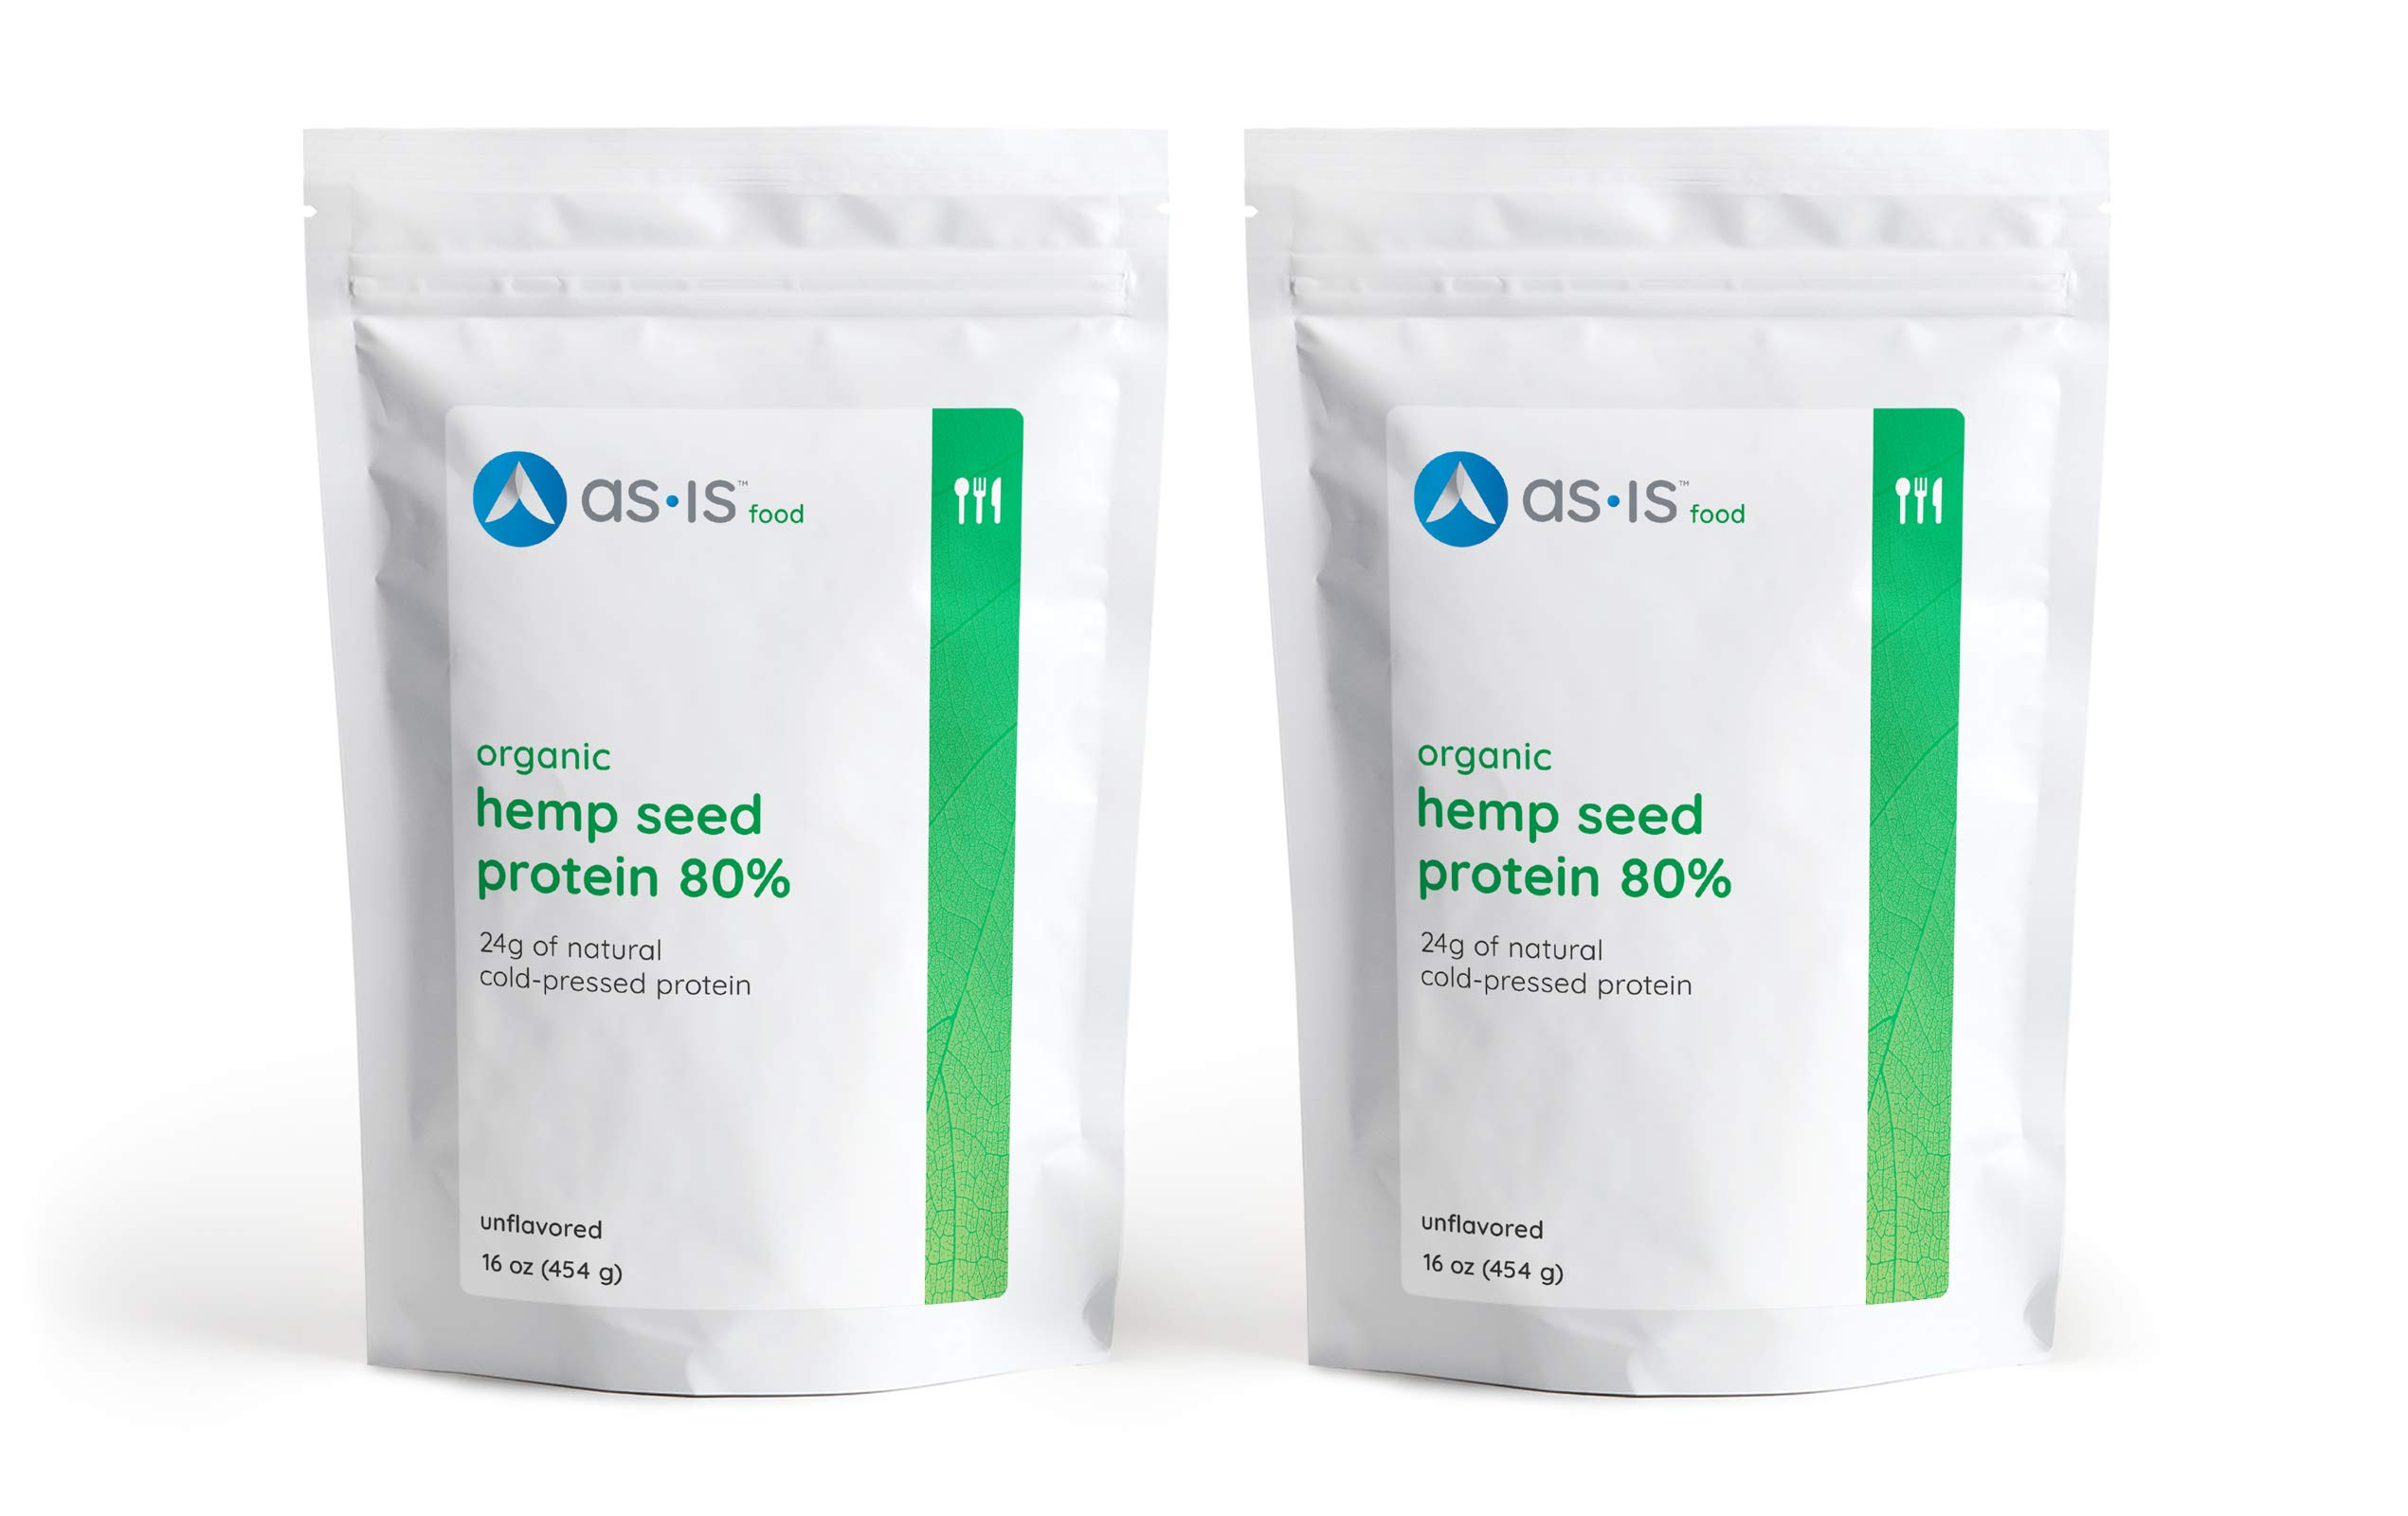 as-is Organic Hemp Seed Protein Powder 80%, Plant-Based, Non-GMO, Unflavored, 16oz (Pack of 2)